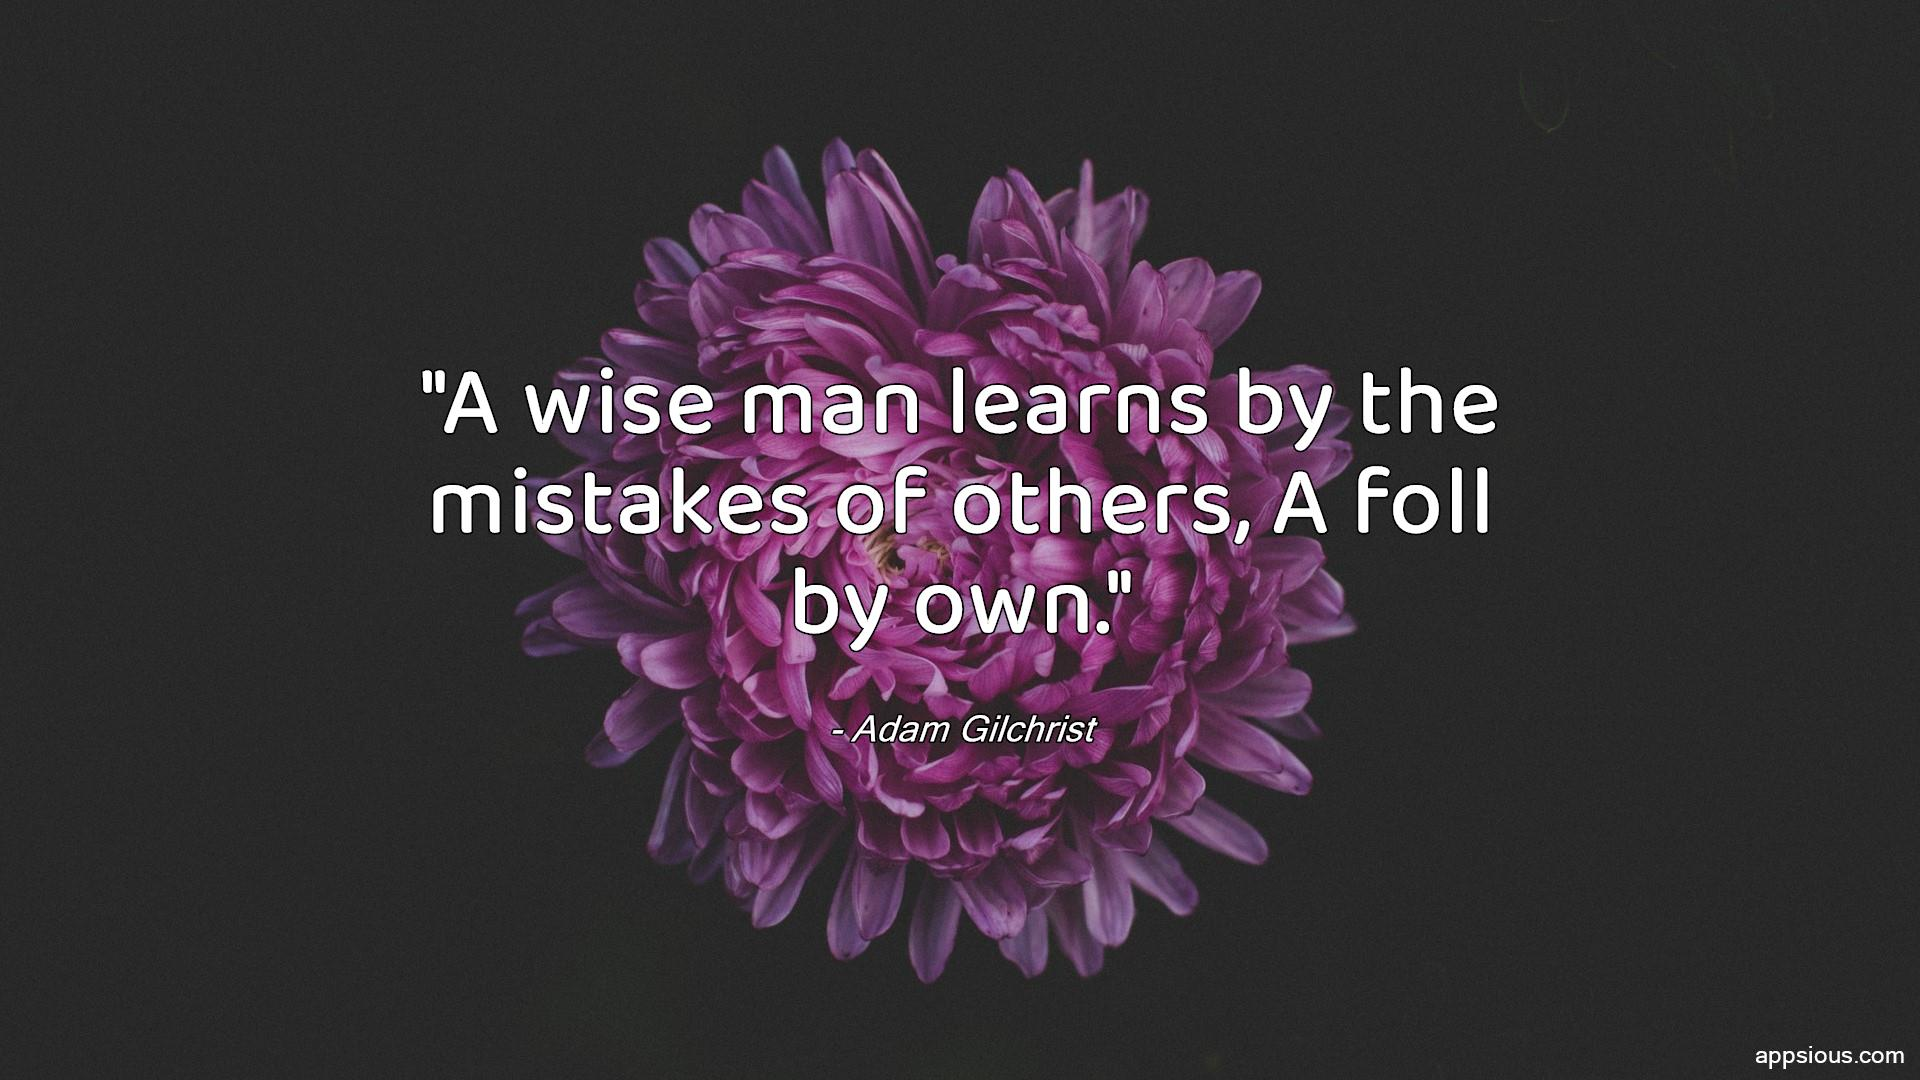 A wise man learns by the mistakes of others, A foll by own.